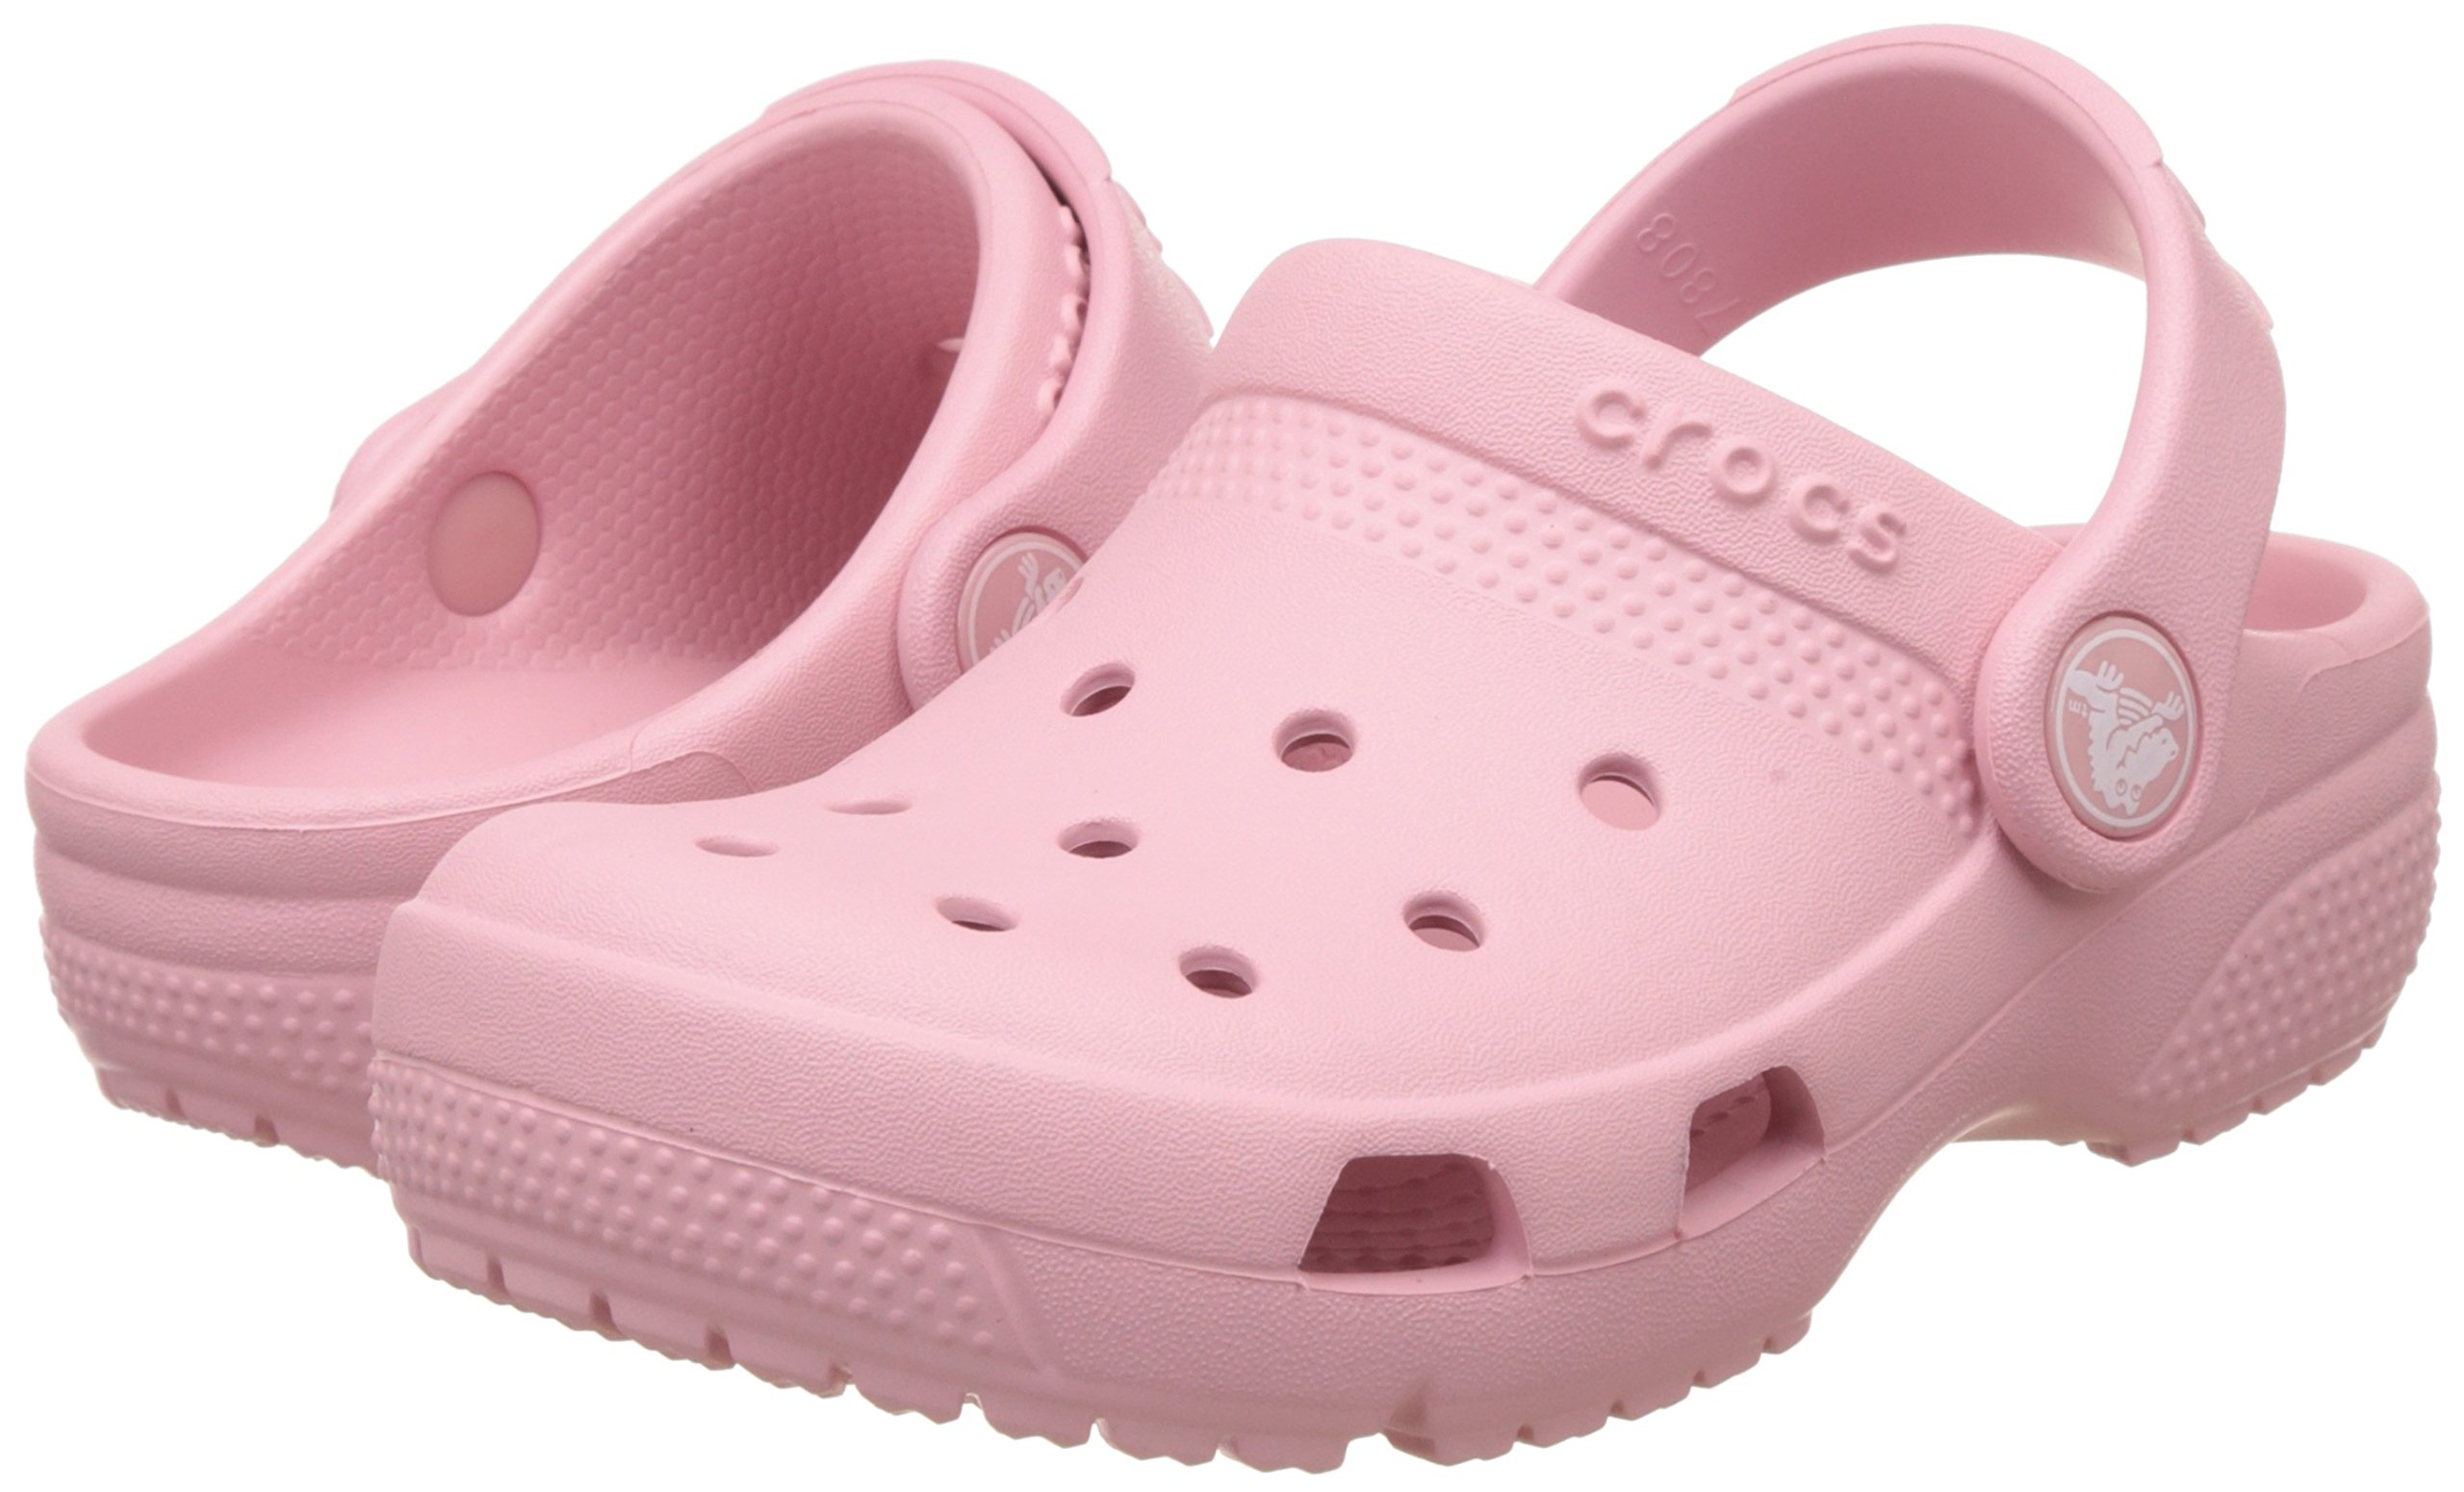 Crocs Kids Unisex Coast Clog (Toddler/Little Kid) Petal Pink 11 M US Little Kid by Crocs (Image #5)